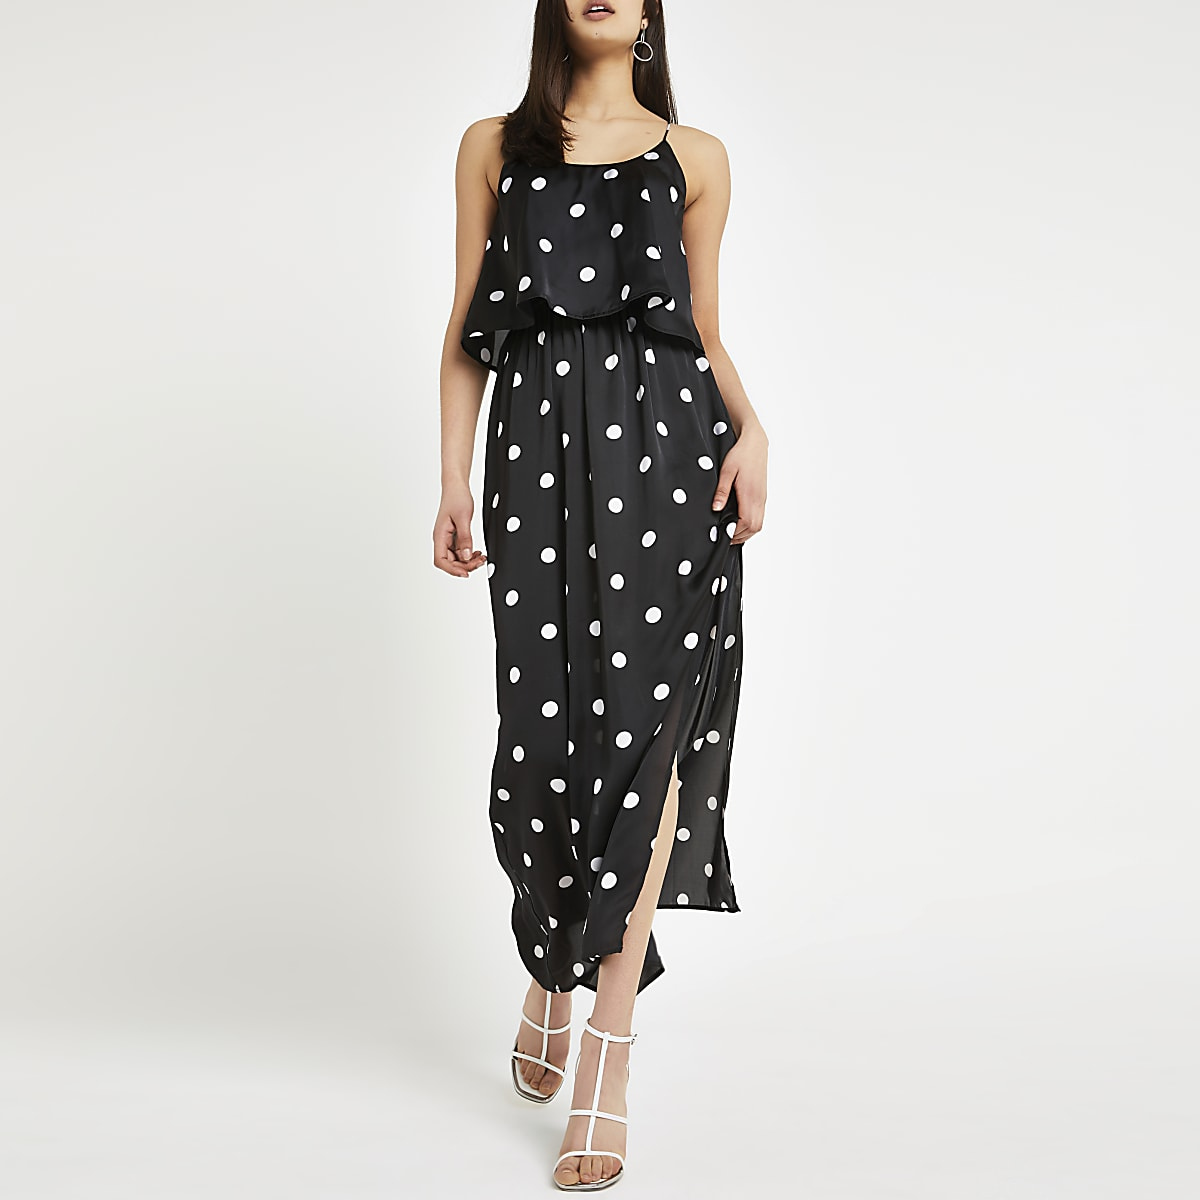 Black spot layered maxi dress